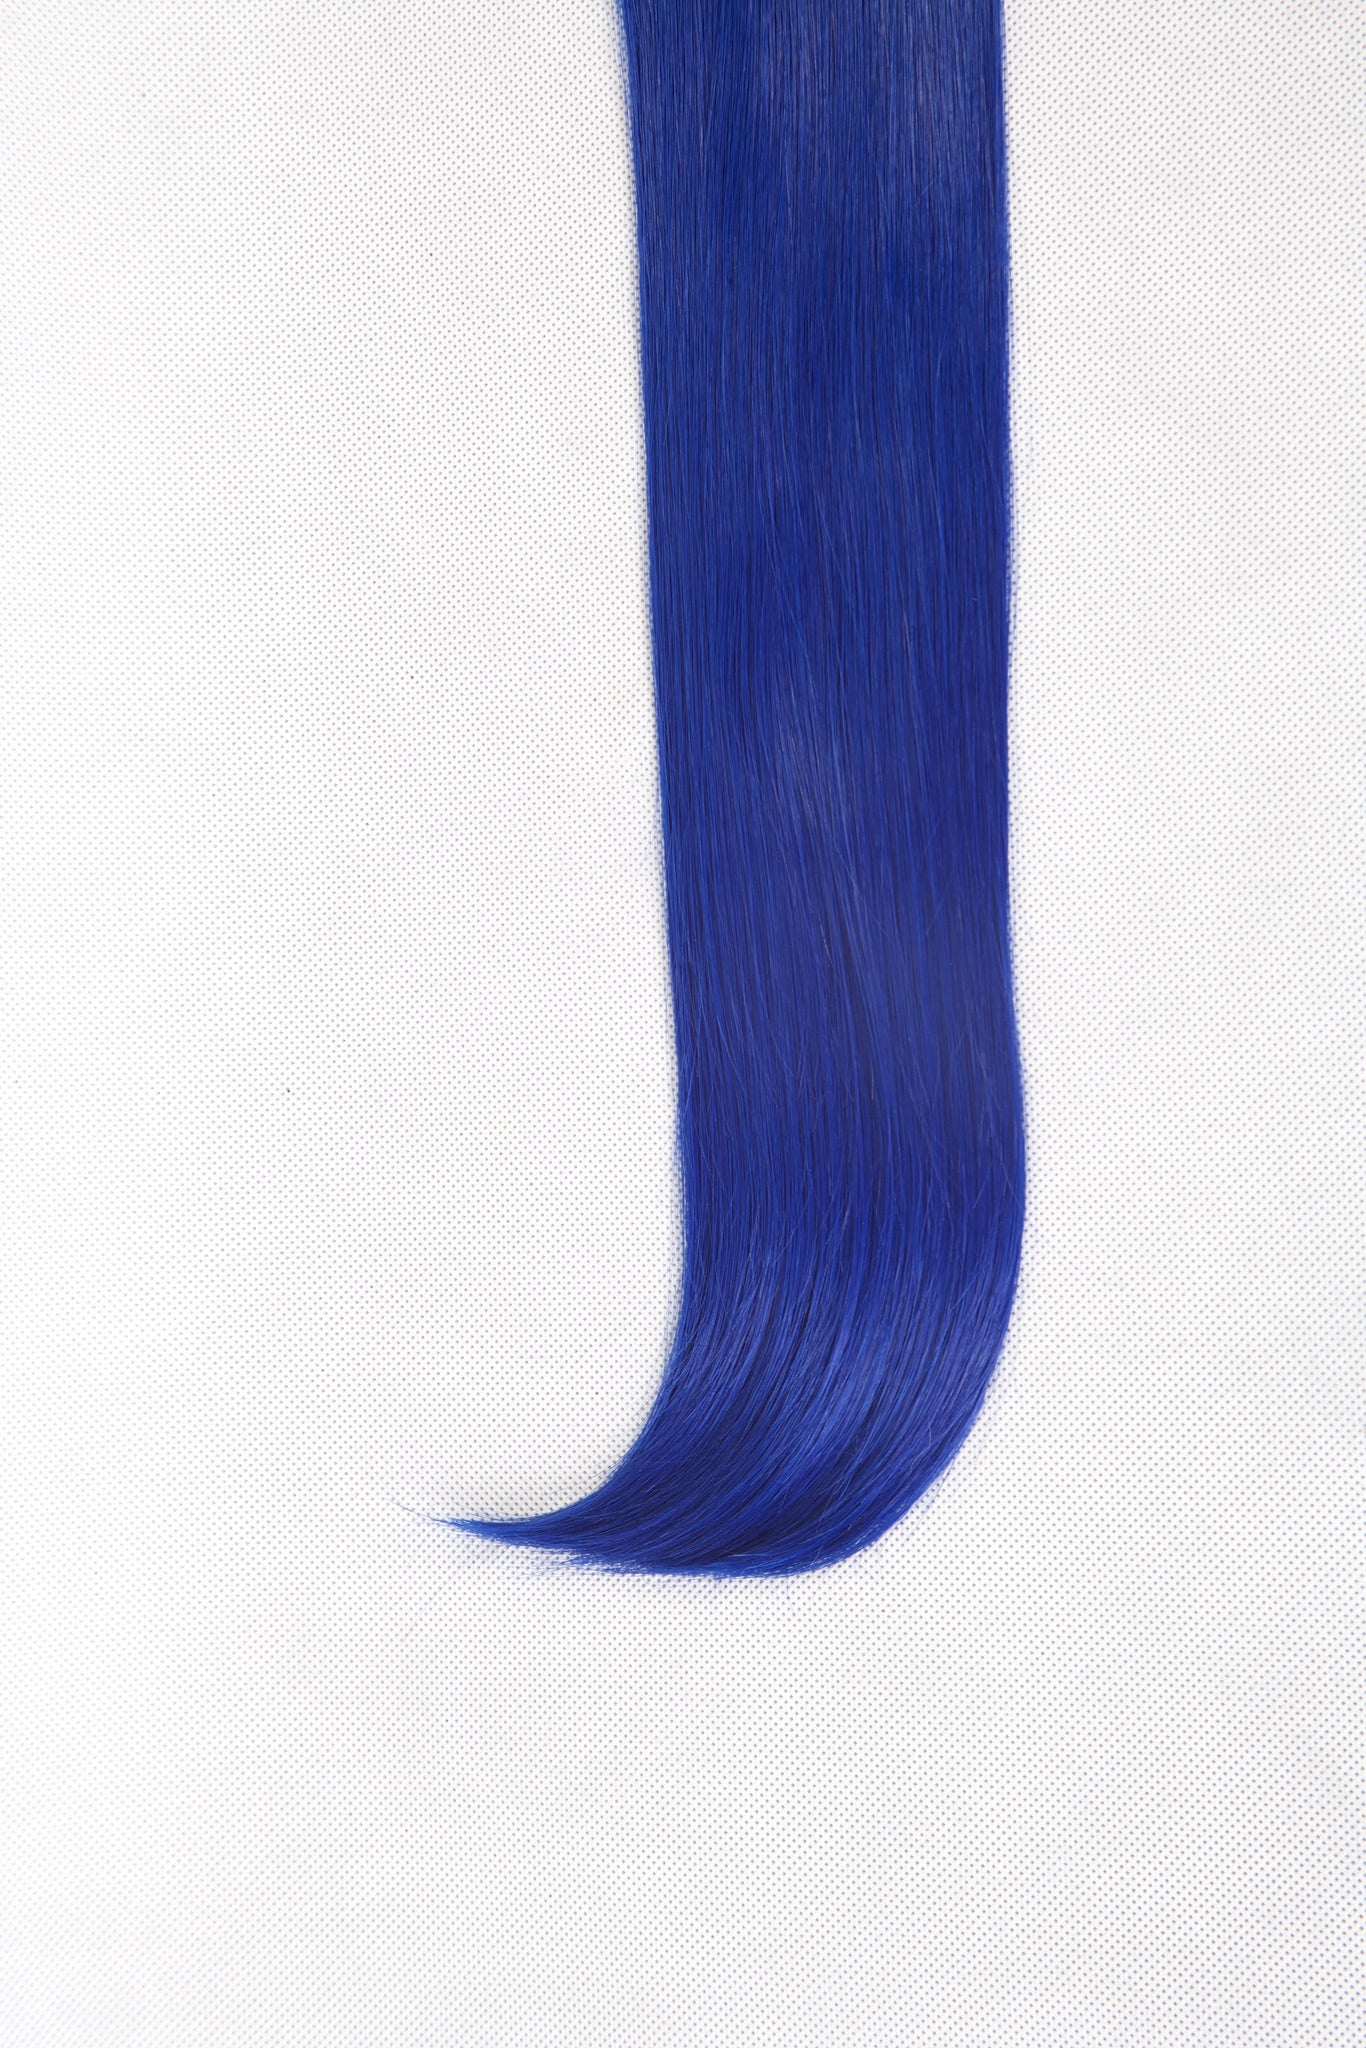 DARK BLUE - DELUXE SYNTHETIC WEFT